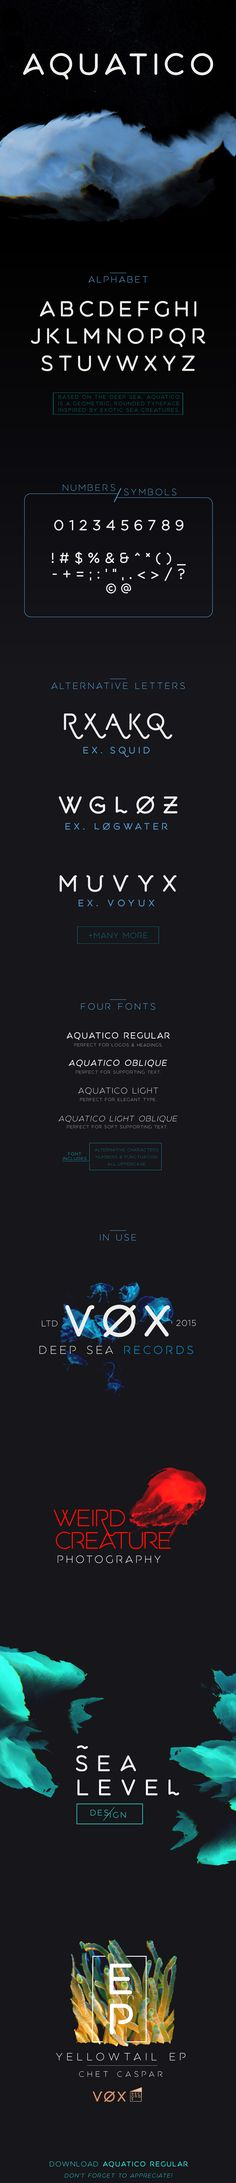 Aquatico - Free Typeface on Typography Served